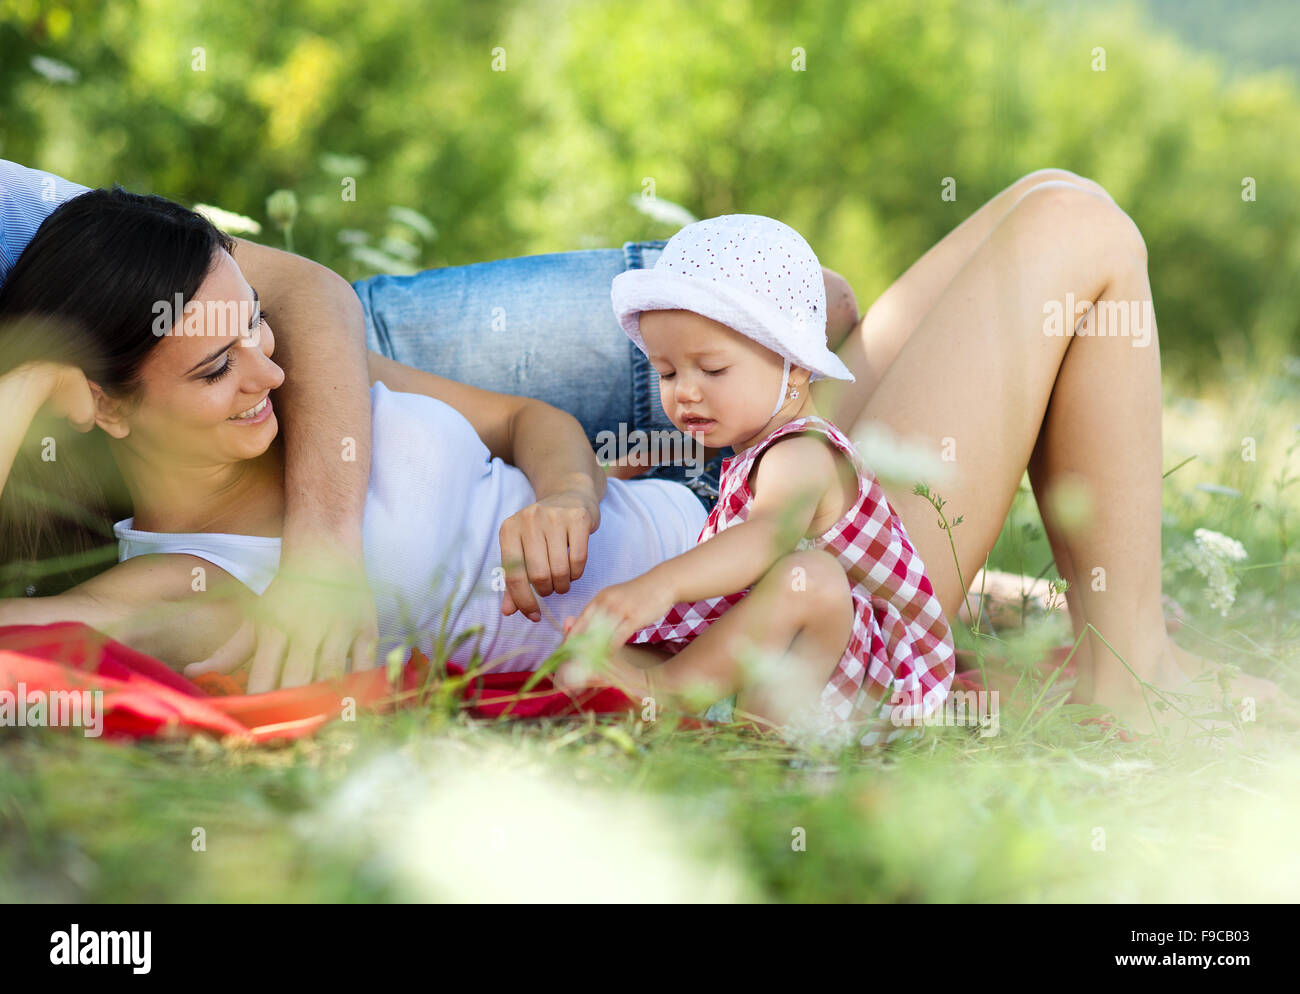 Happy young family spending time outdoor on a summer day - Stock Image